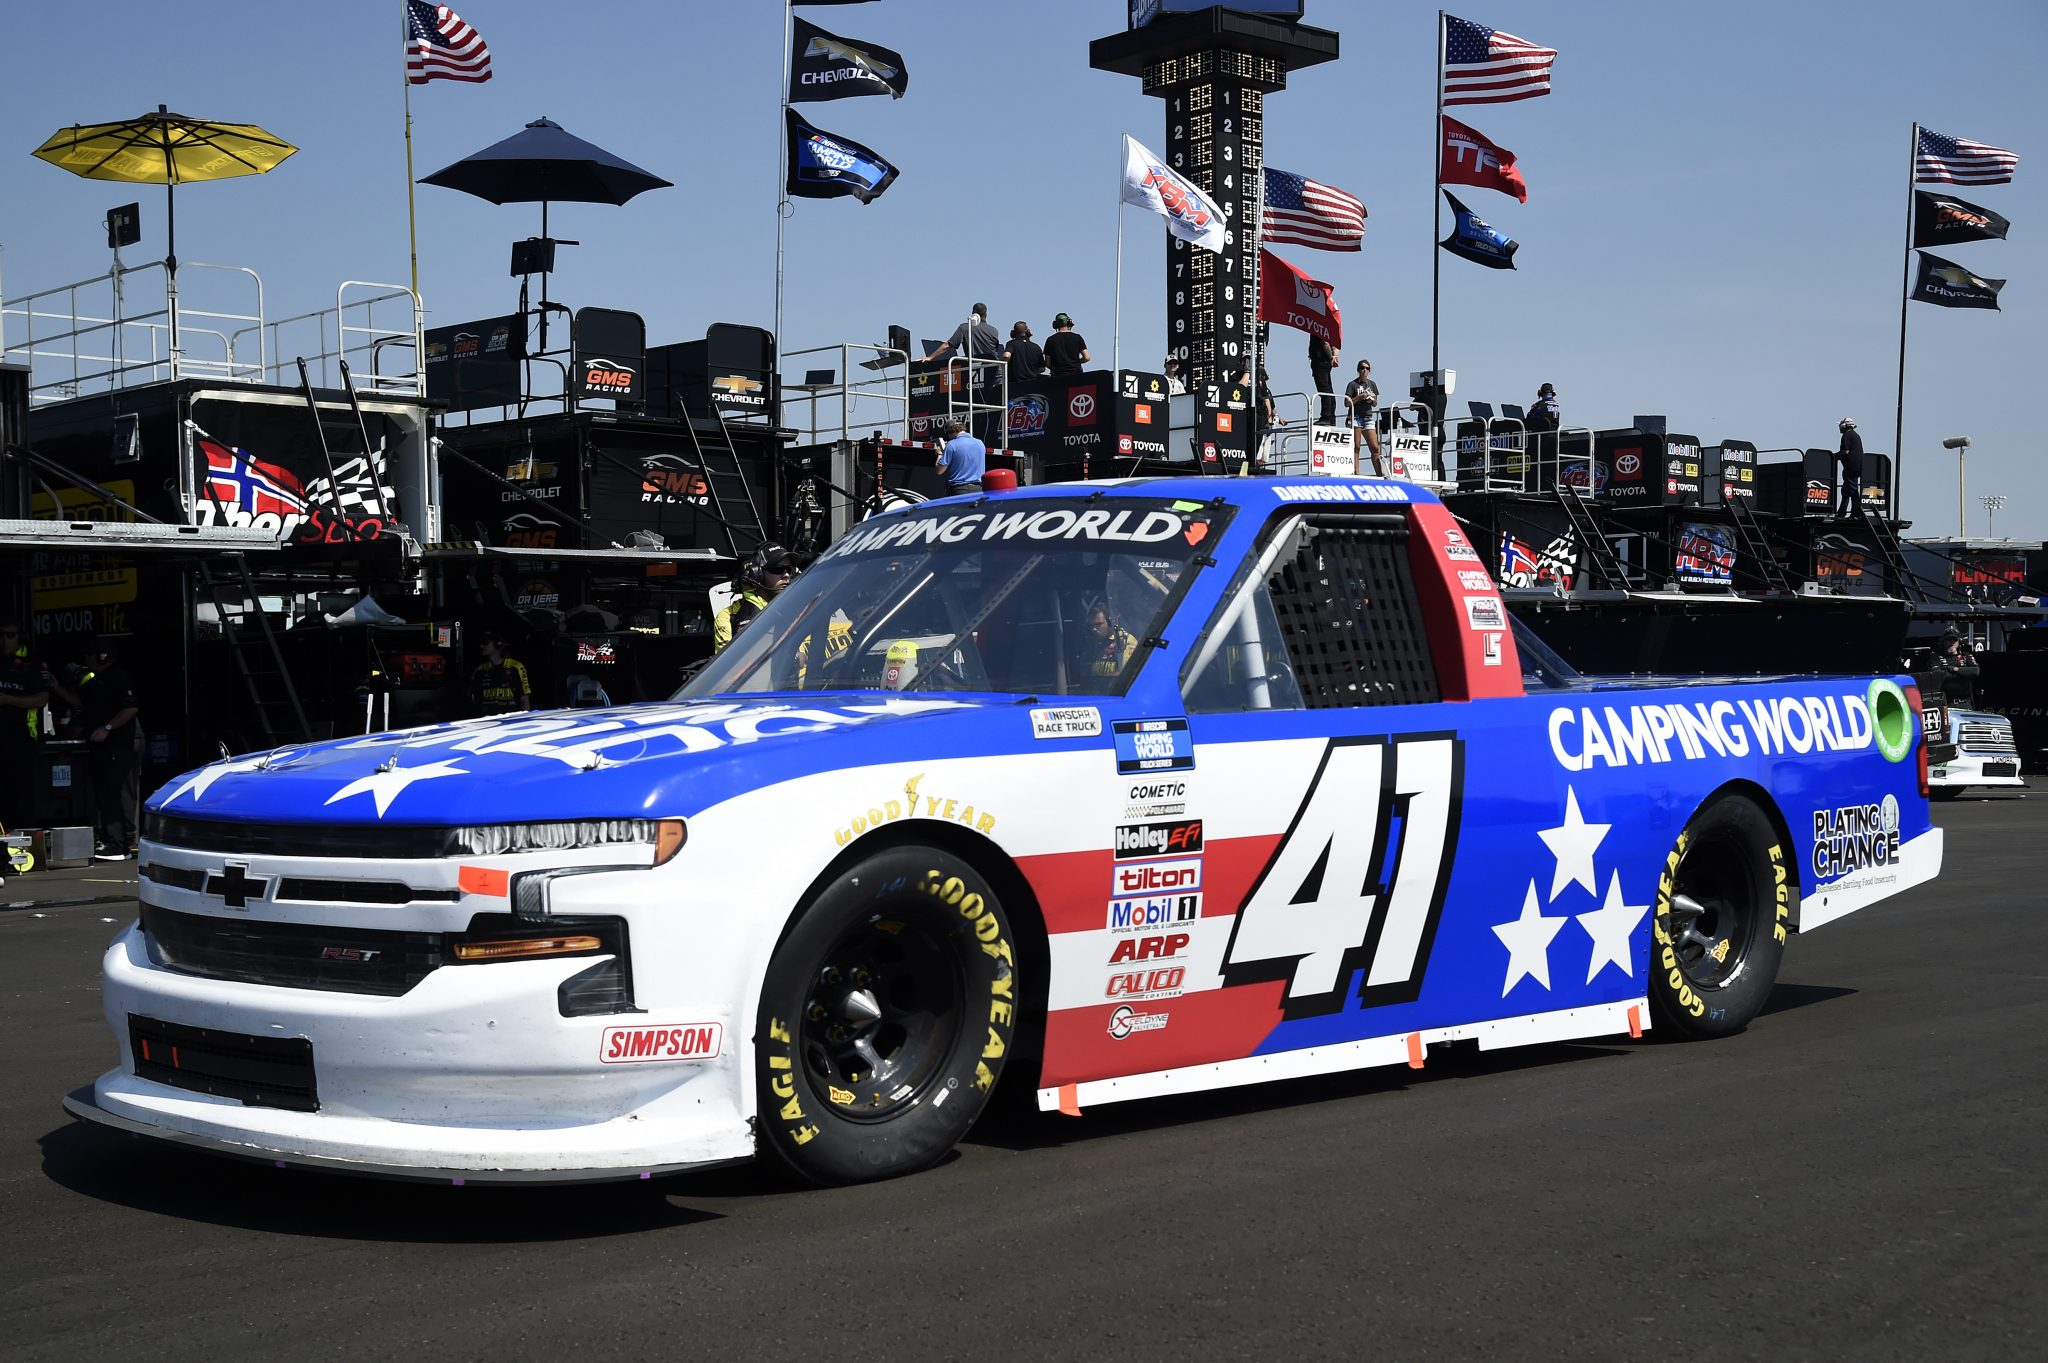 LEBANON, TENNESSEE - JUNE 18: Dawson Cram, driver of the #41 Camping World Chevrolet, drives in the garage area during practice for the NASCAR Camping World Truck Series Rackley Roofing 200 at Nashville Superspeedway on June 18, 2021 in Lebanon, Tennessee. (Photo by Logan Riely/Getty Images) | Getty Images